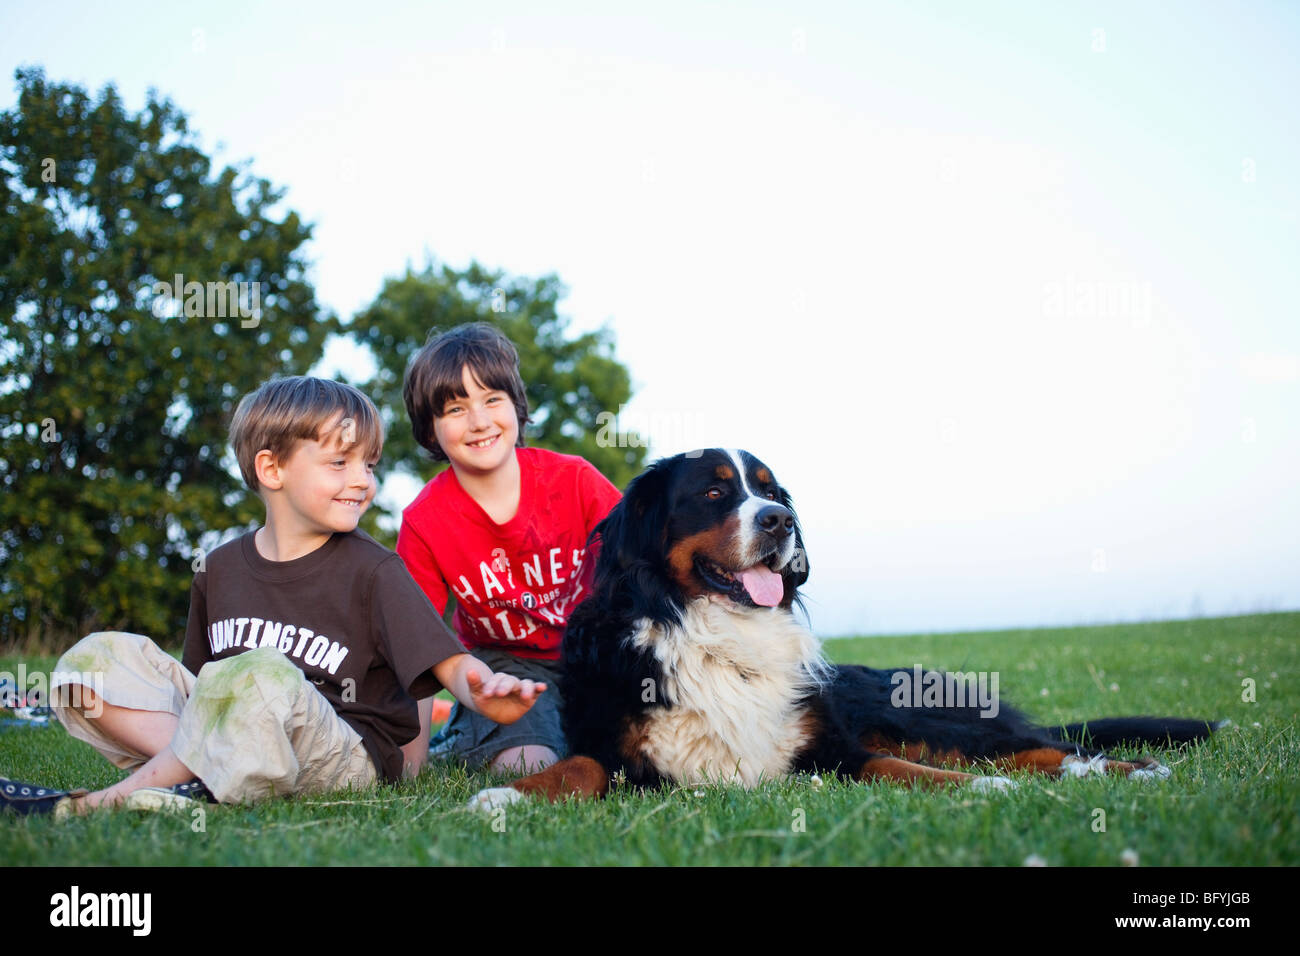 Two Boys With Huge Dog - Stock Image